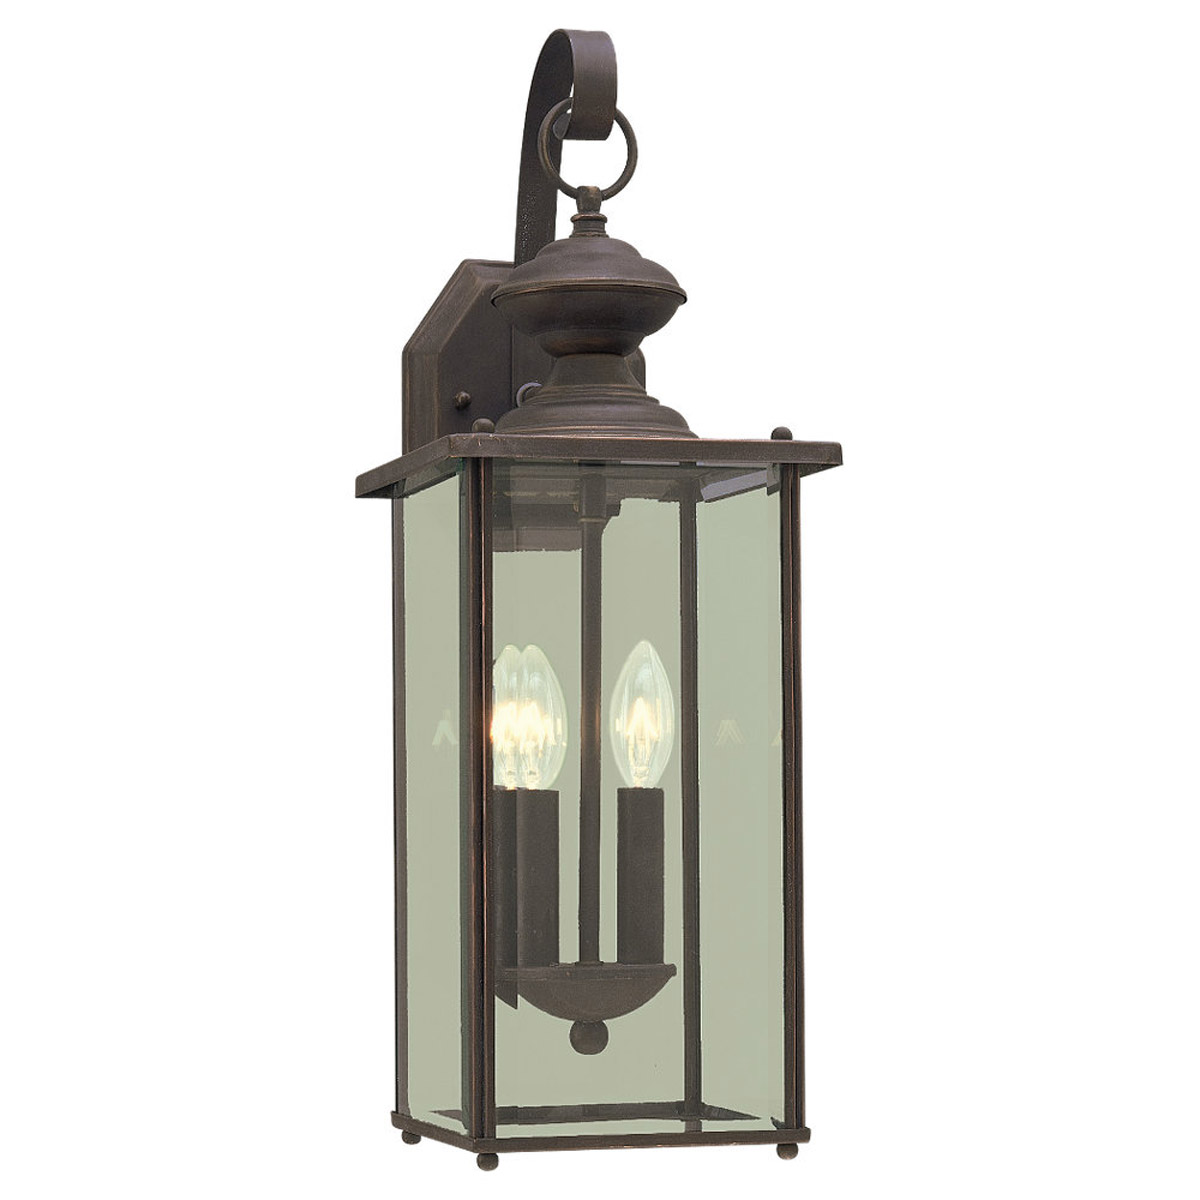 Sea Gull Lighting Jamestowne 2 Light Outdoor Wall Lantern in Antique Bronze 8468-71 photo